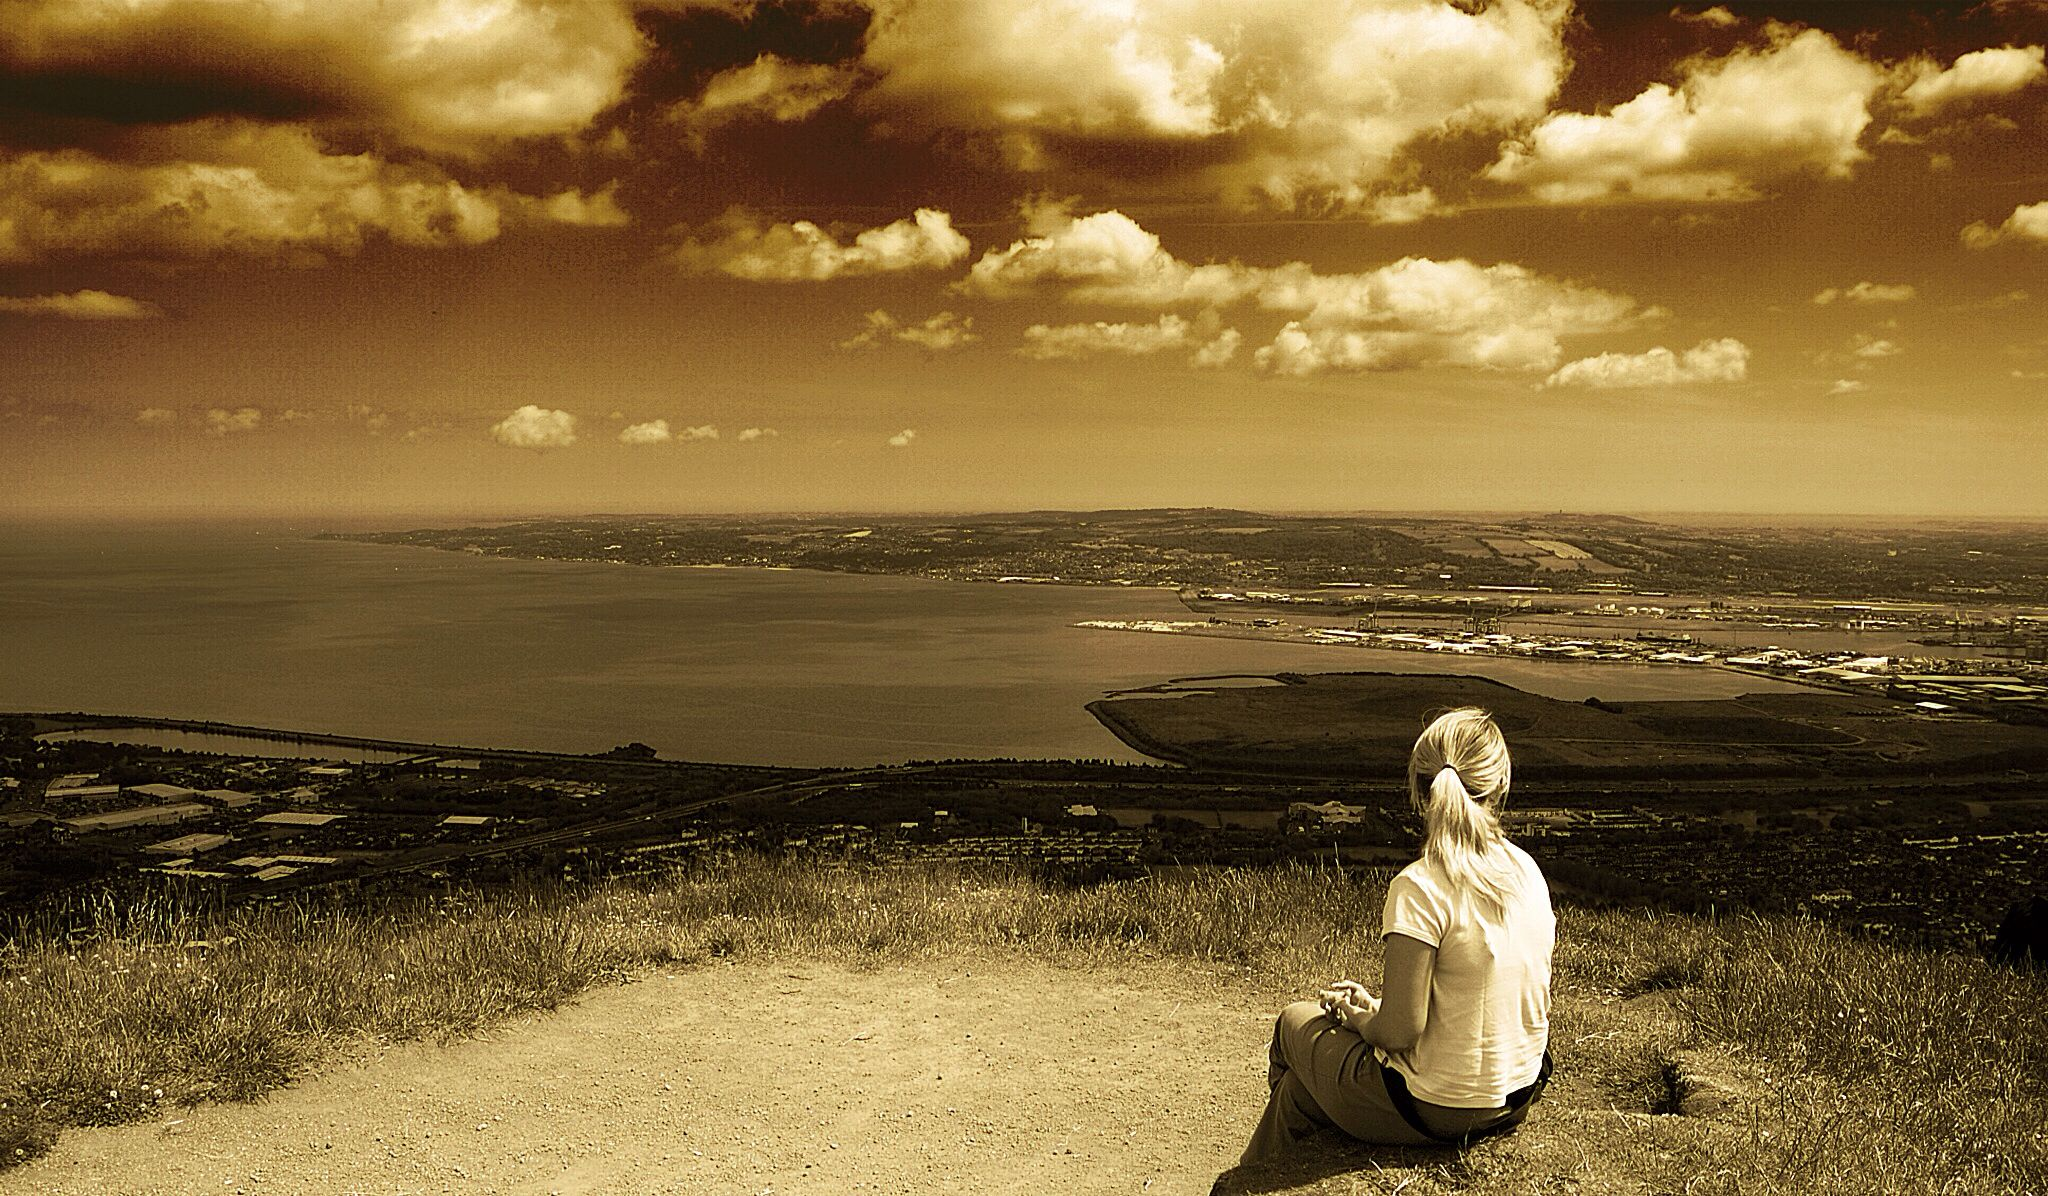 On top of Cave Hill overlooking Belfast Lough